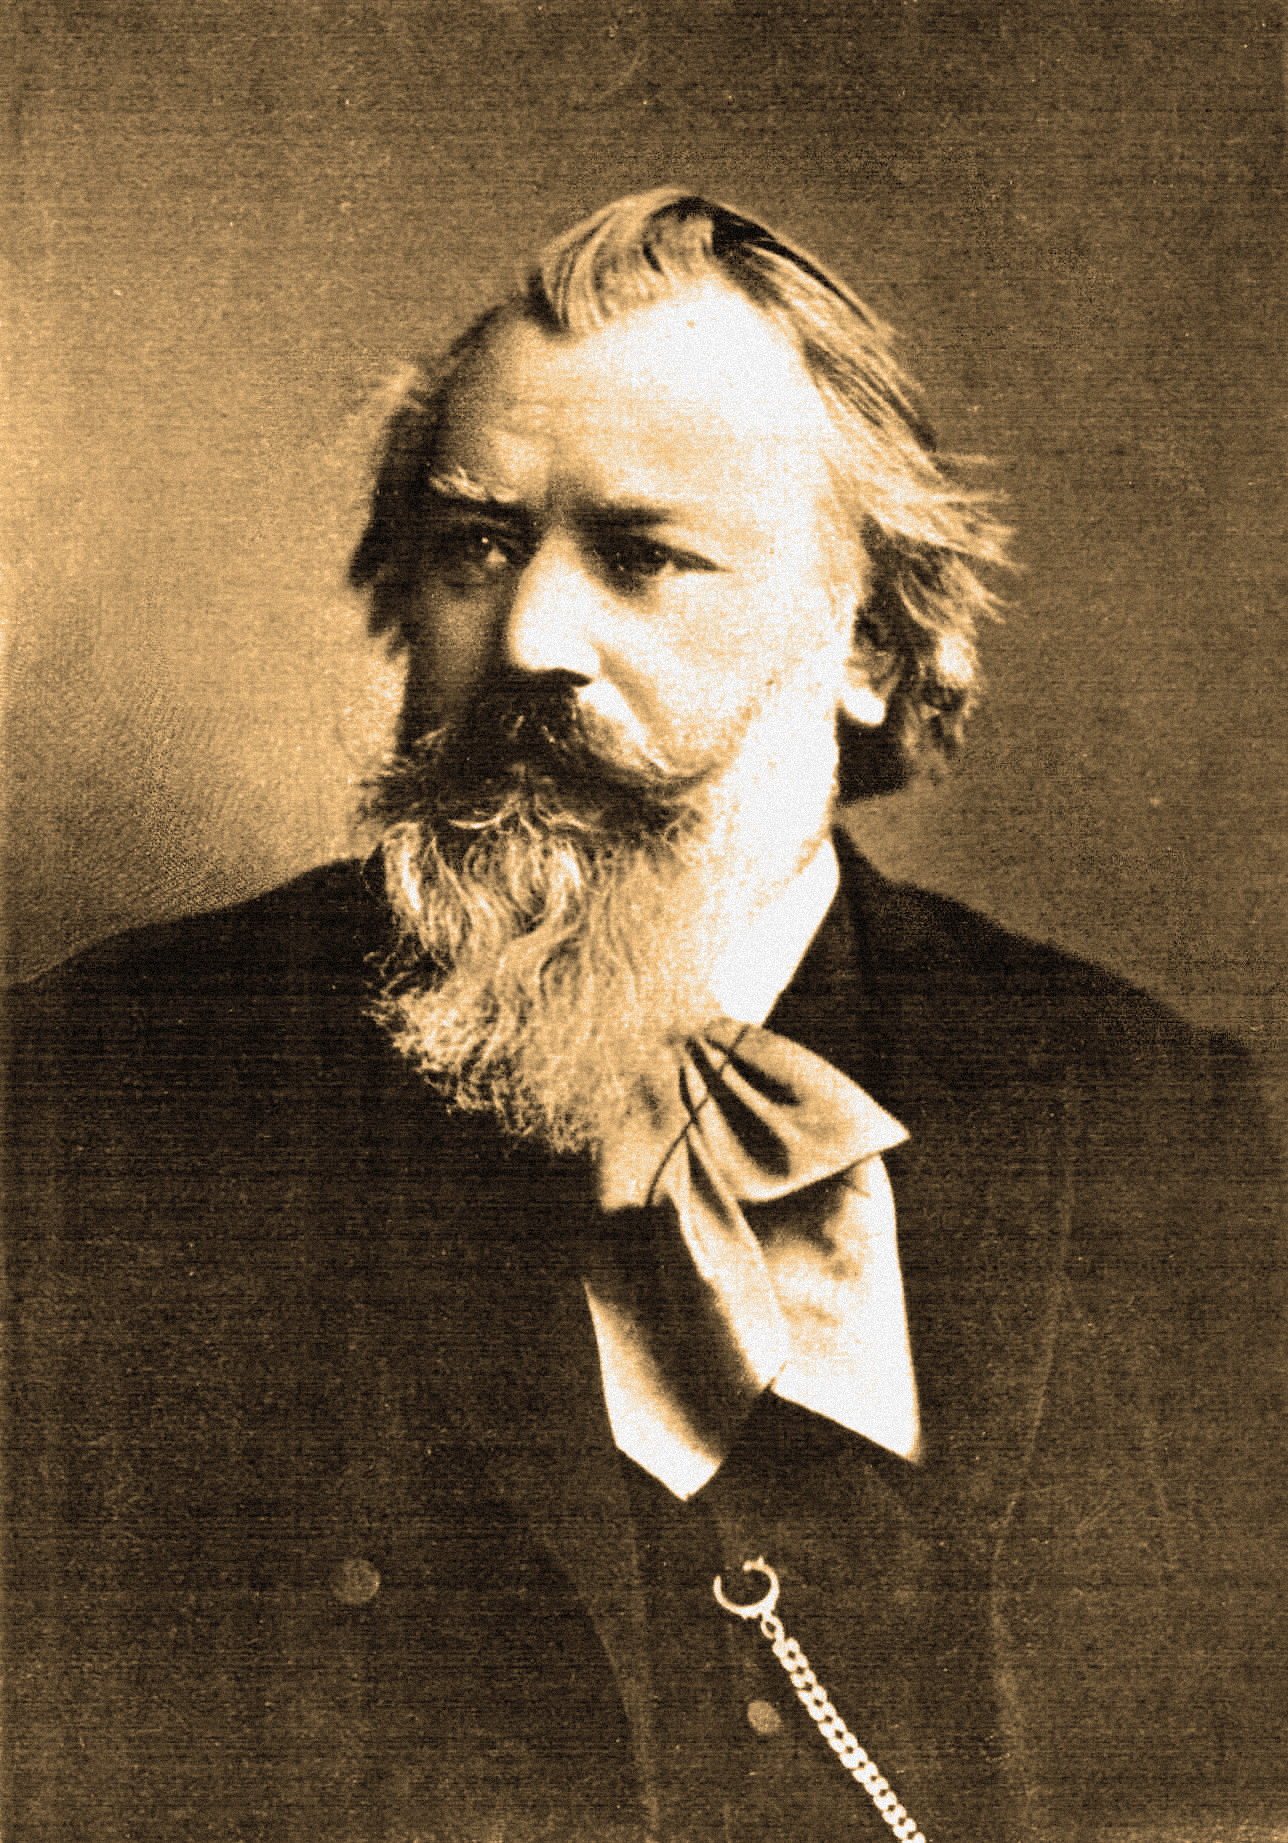 Biography johannes brahms piano and keyboard music biography johannes brahms fandeluxe Image collections